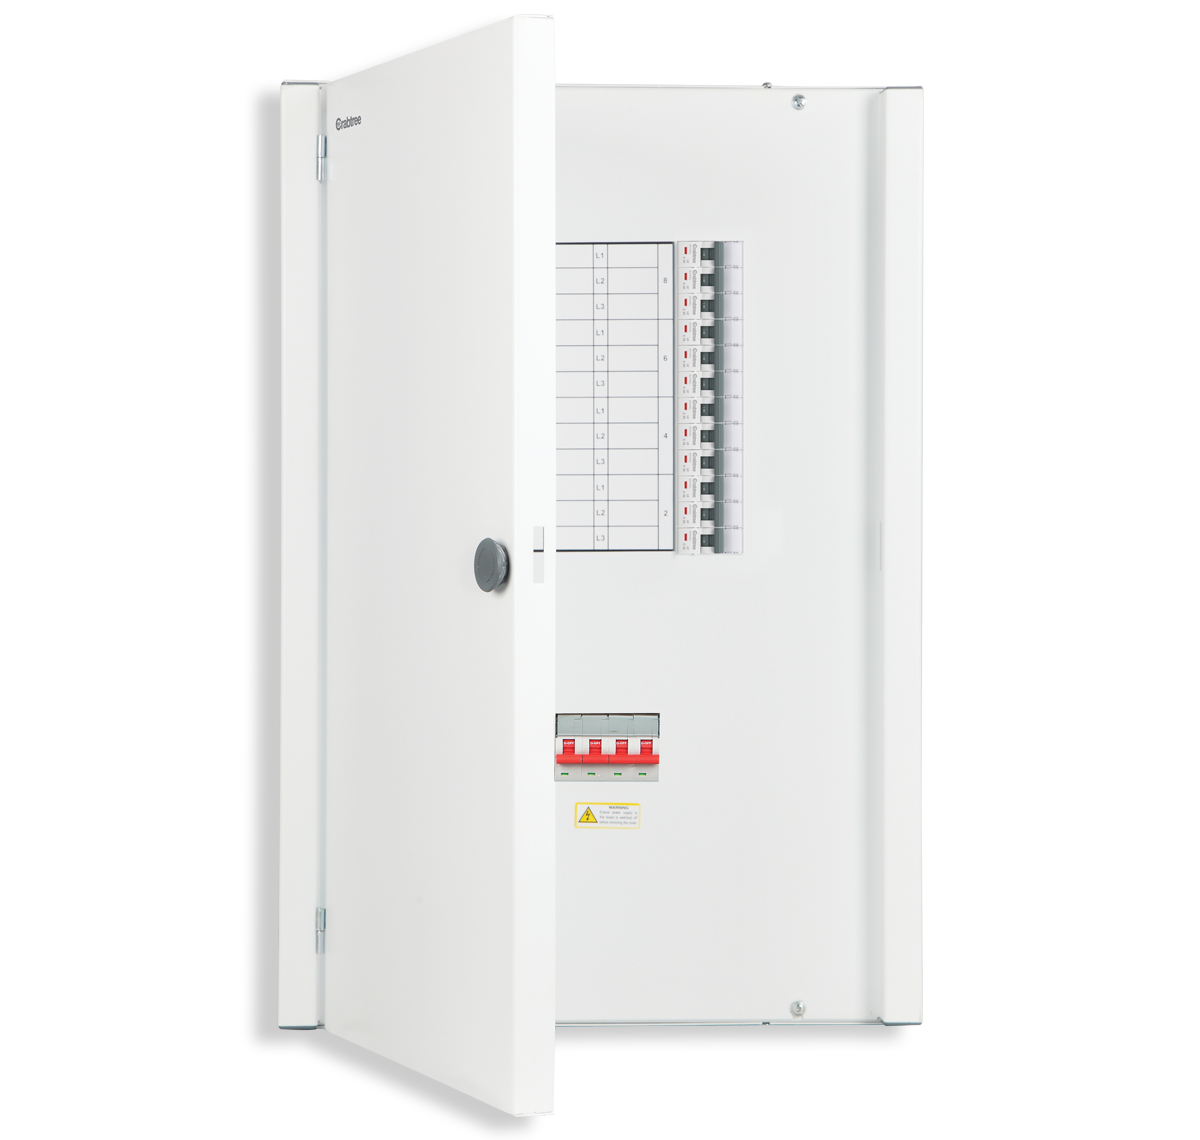 Crabtree - distribution board TPN-MCB 8 WAY